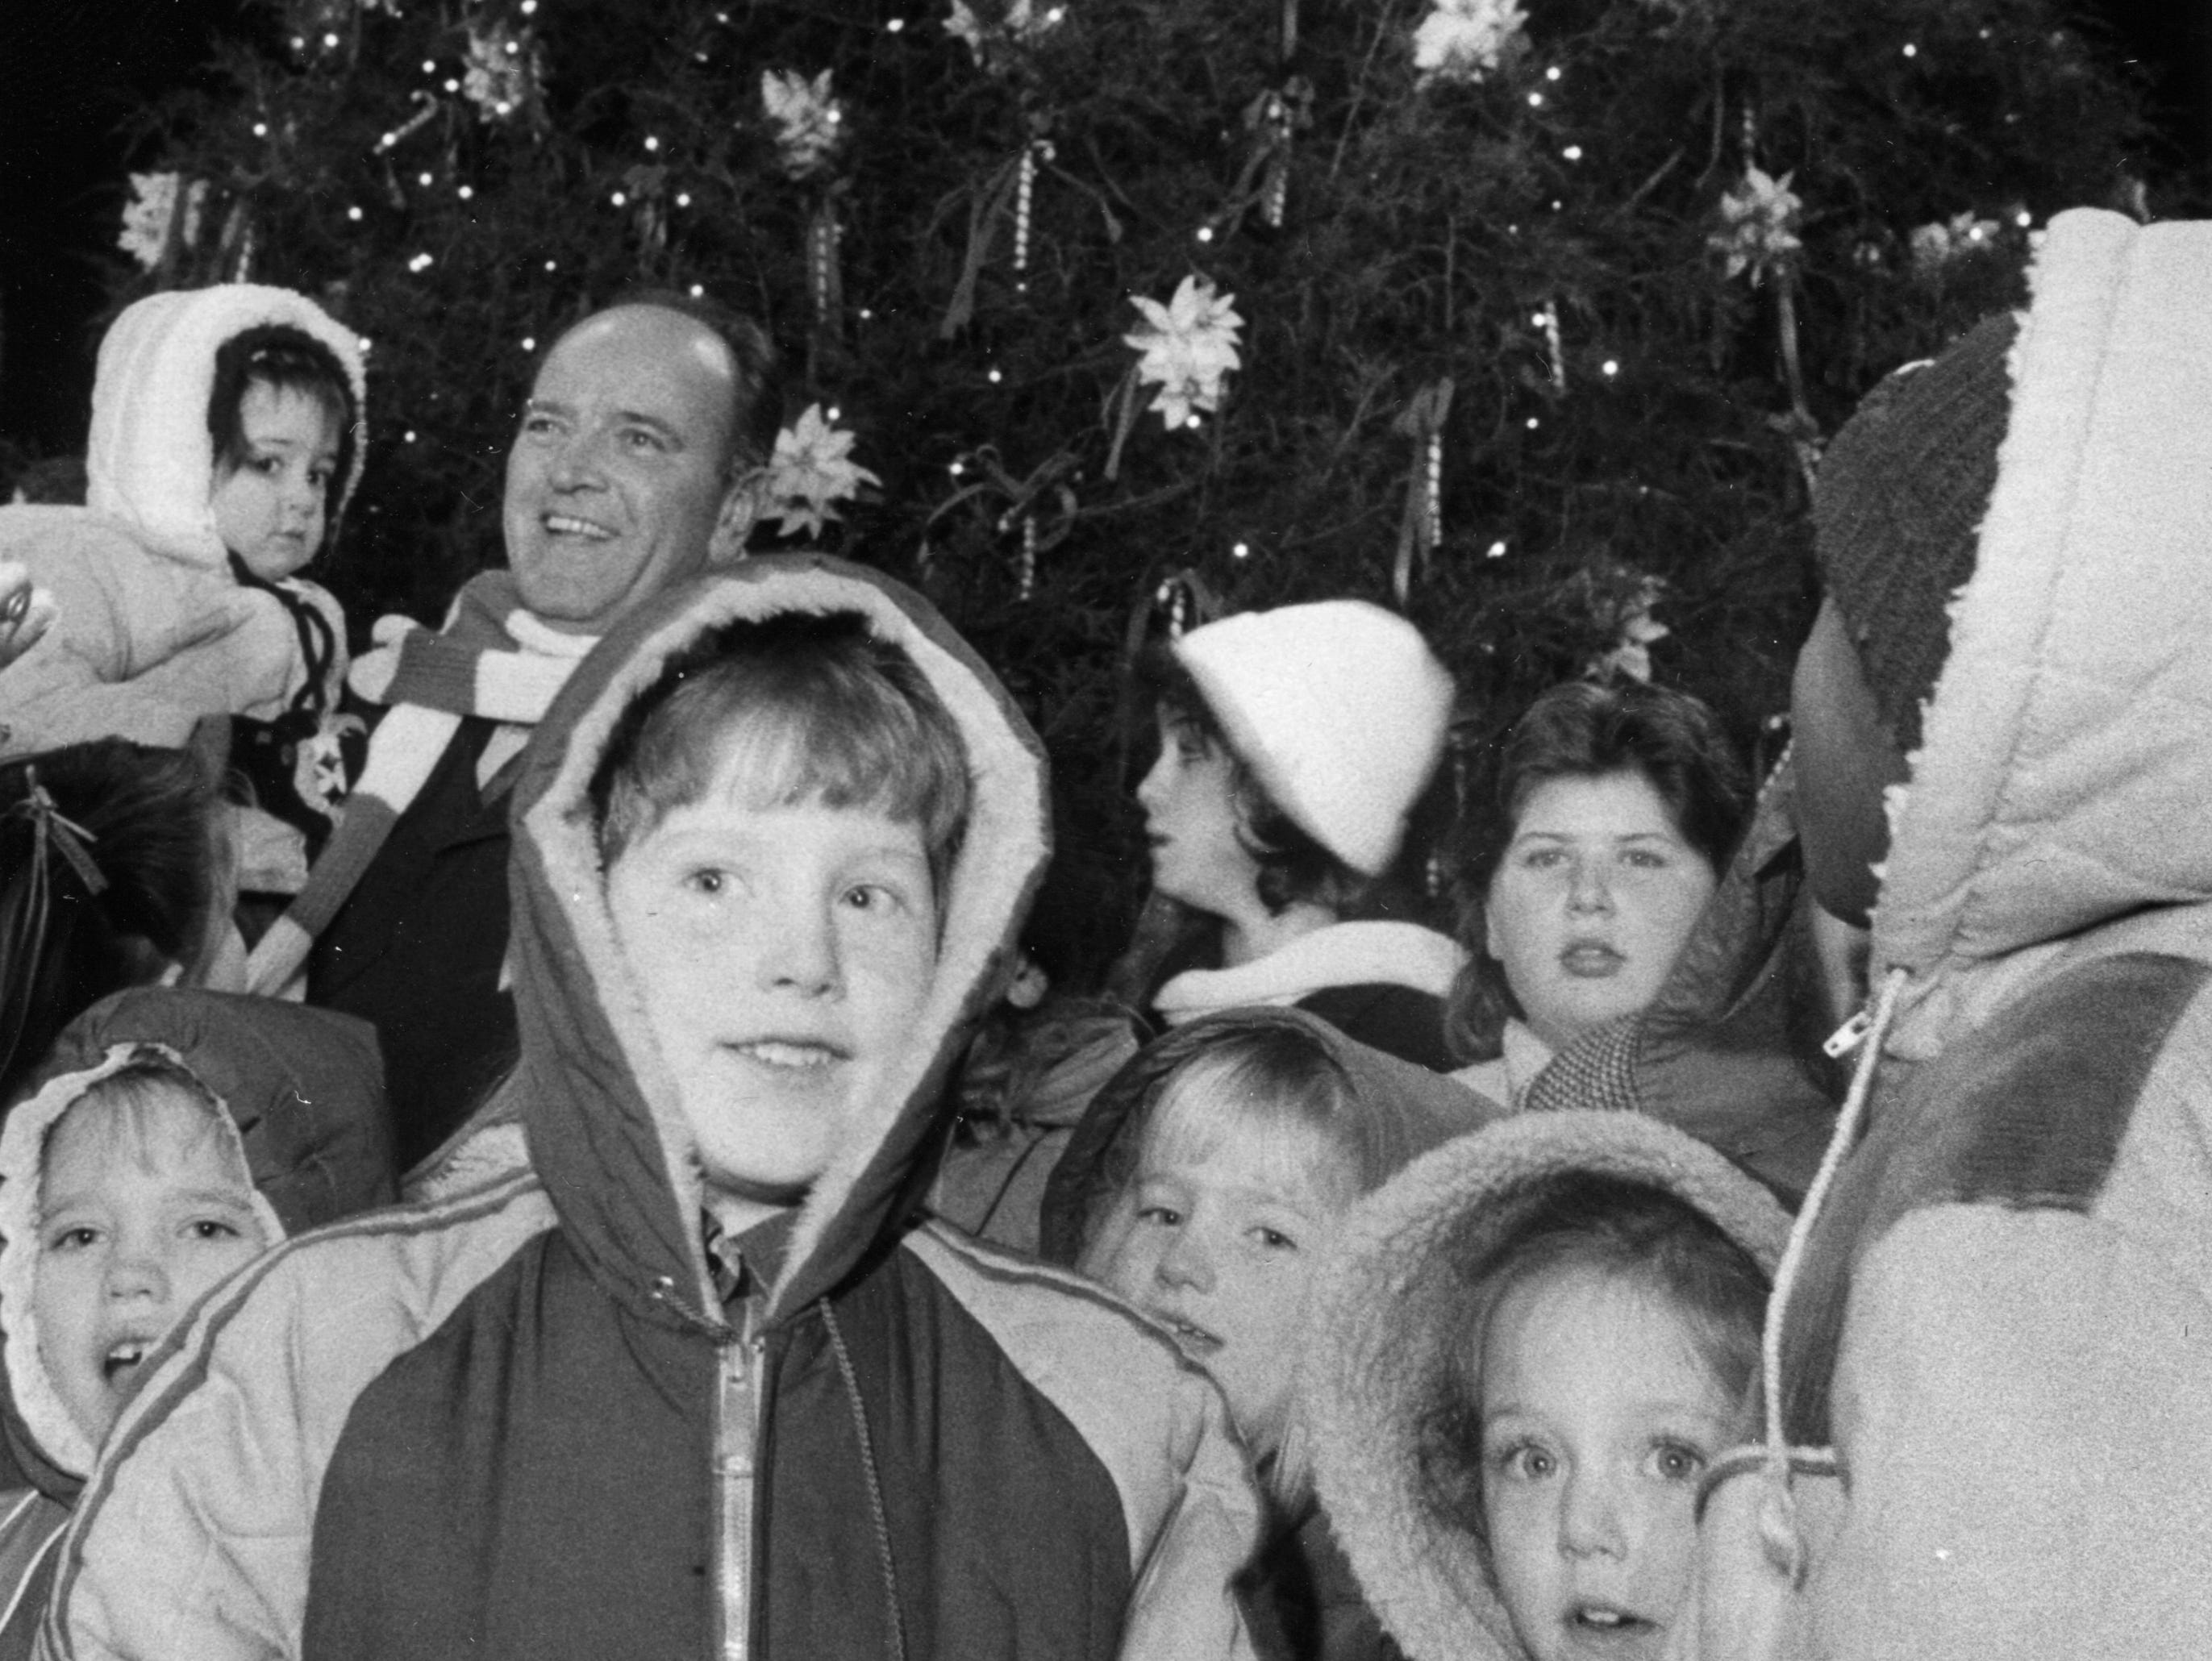 Mayor Kyle Testerman helps celebrate the lighting of the city's Christmas tree on Dec. 7, 1984, at Market Square. (Knoxville News Sentinel Archive)